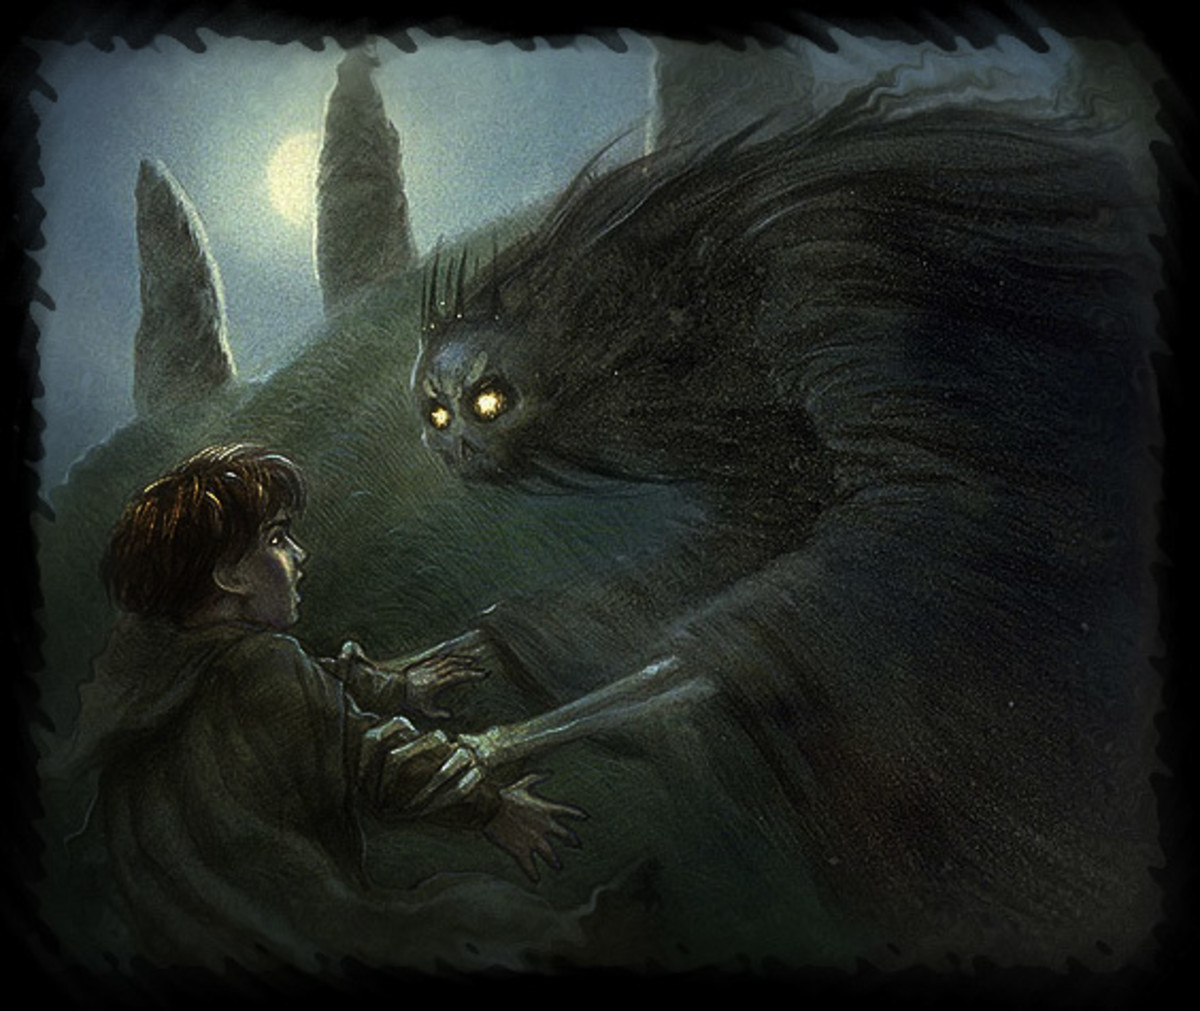 The Lost Sword of Tyrn Gorthad, a Tribute to M.R. James & J.R.R. Tolkien